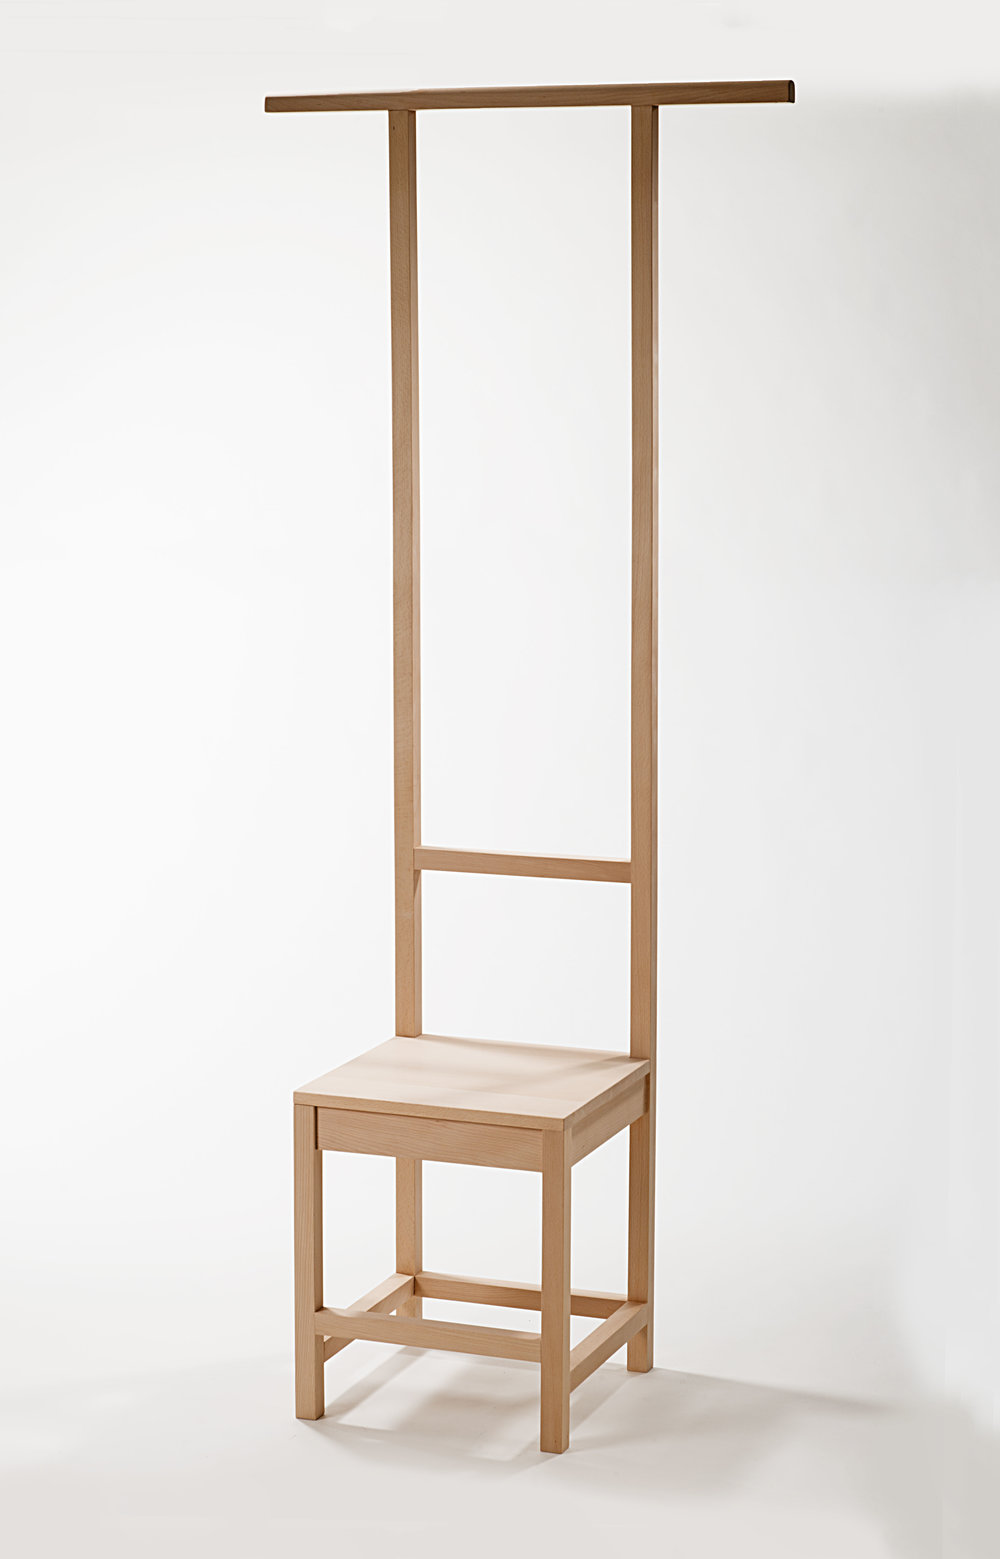 high back chair_Xinran Zheng copy.jpg